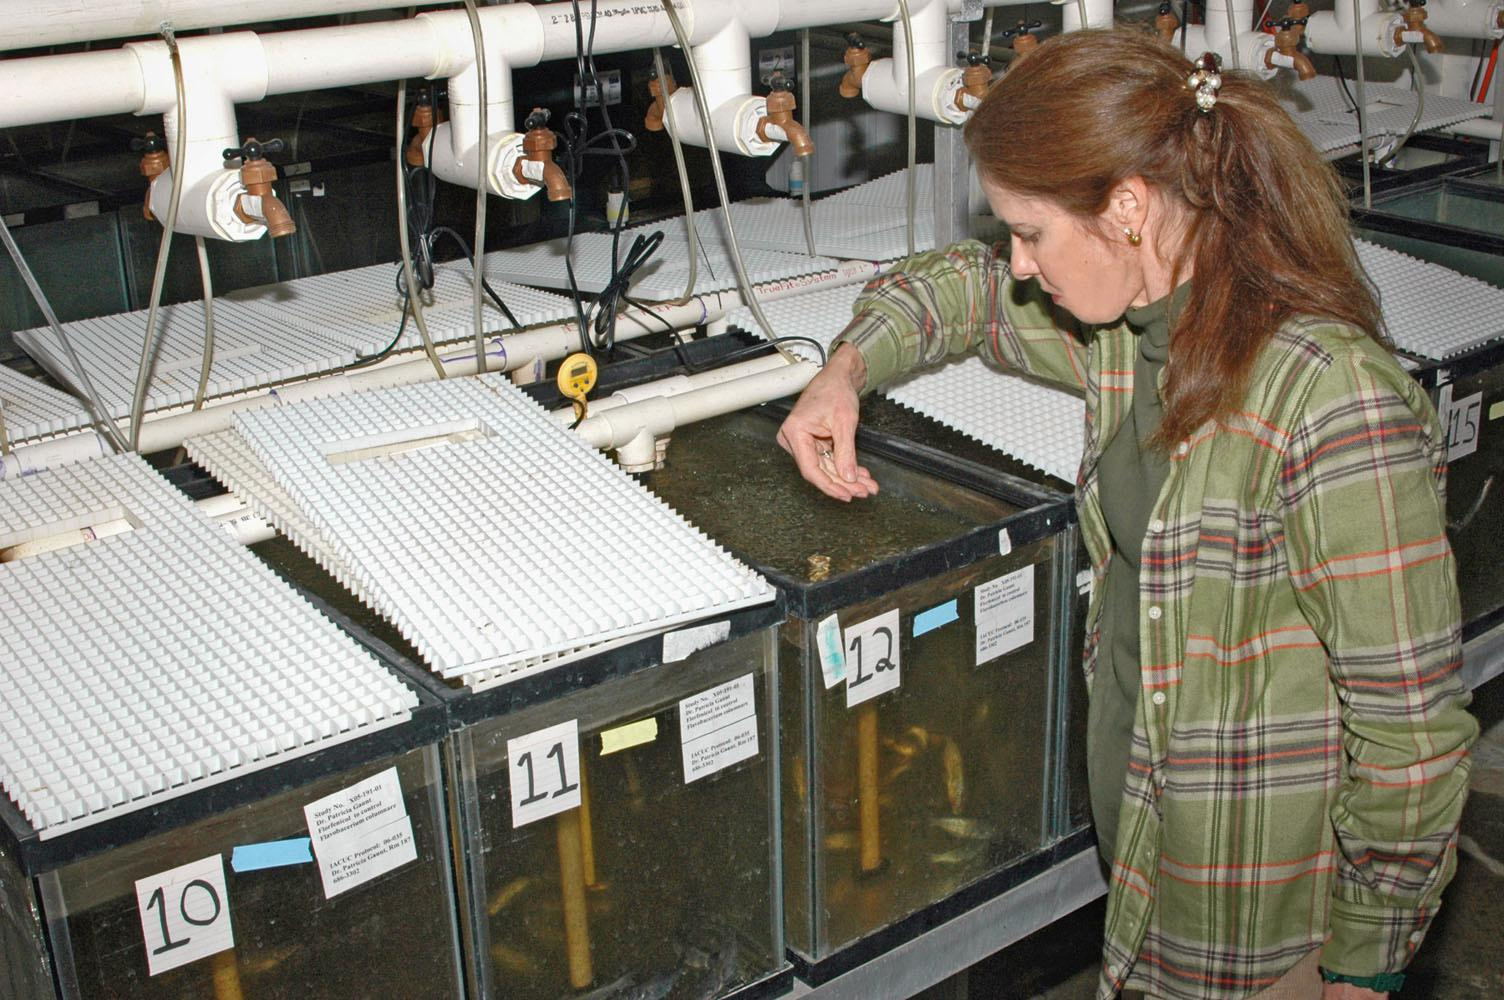 Pat Gaunt, interim head of the Mississippi State University College of Veterinarian Medicine aquatic diagnostic lab in Stoneville, gives medicated feed to fish sick with columnaris disease. (MSU Delta Research and Extension Center photo/Robert H. Wells)